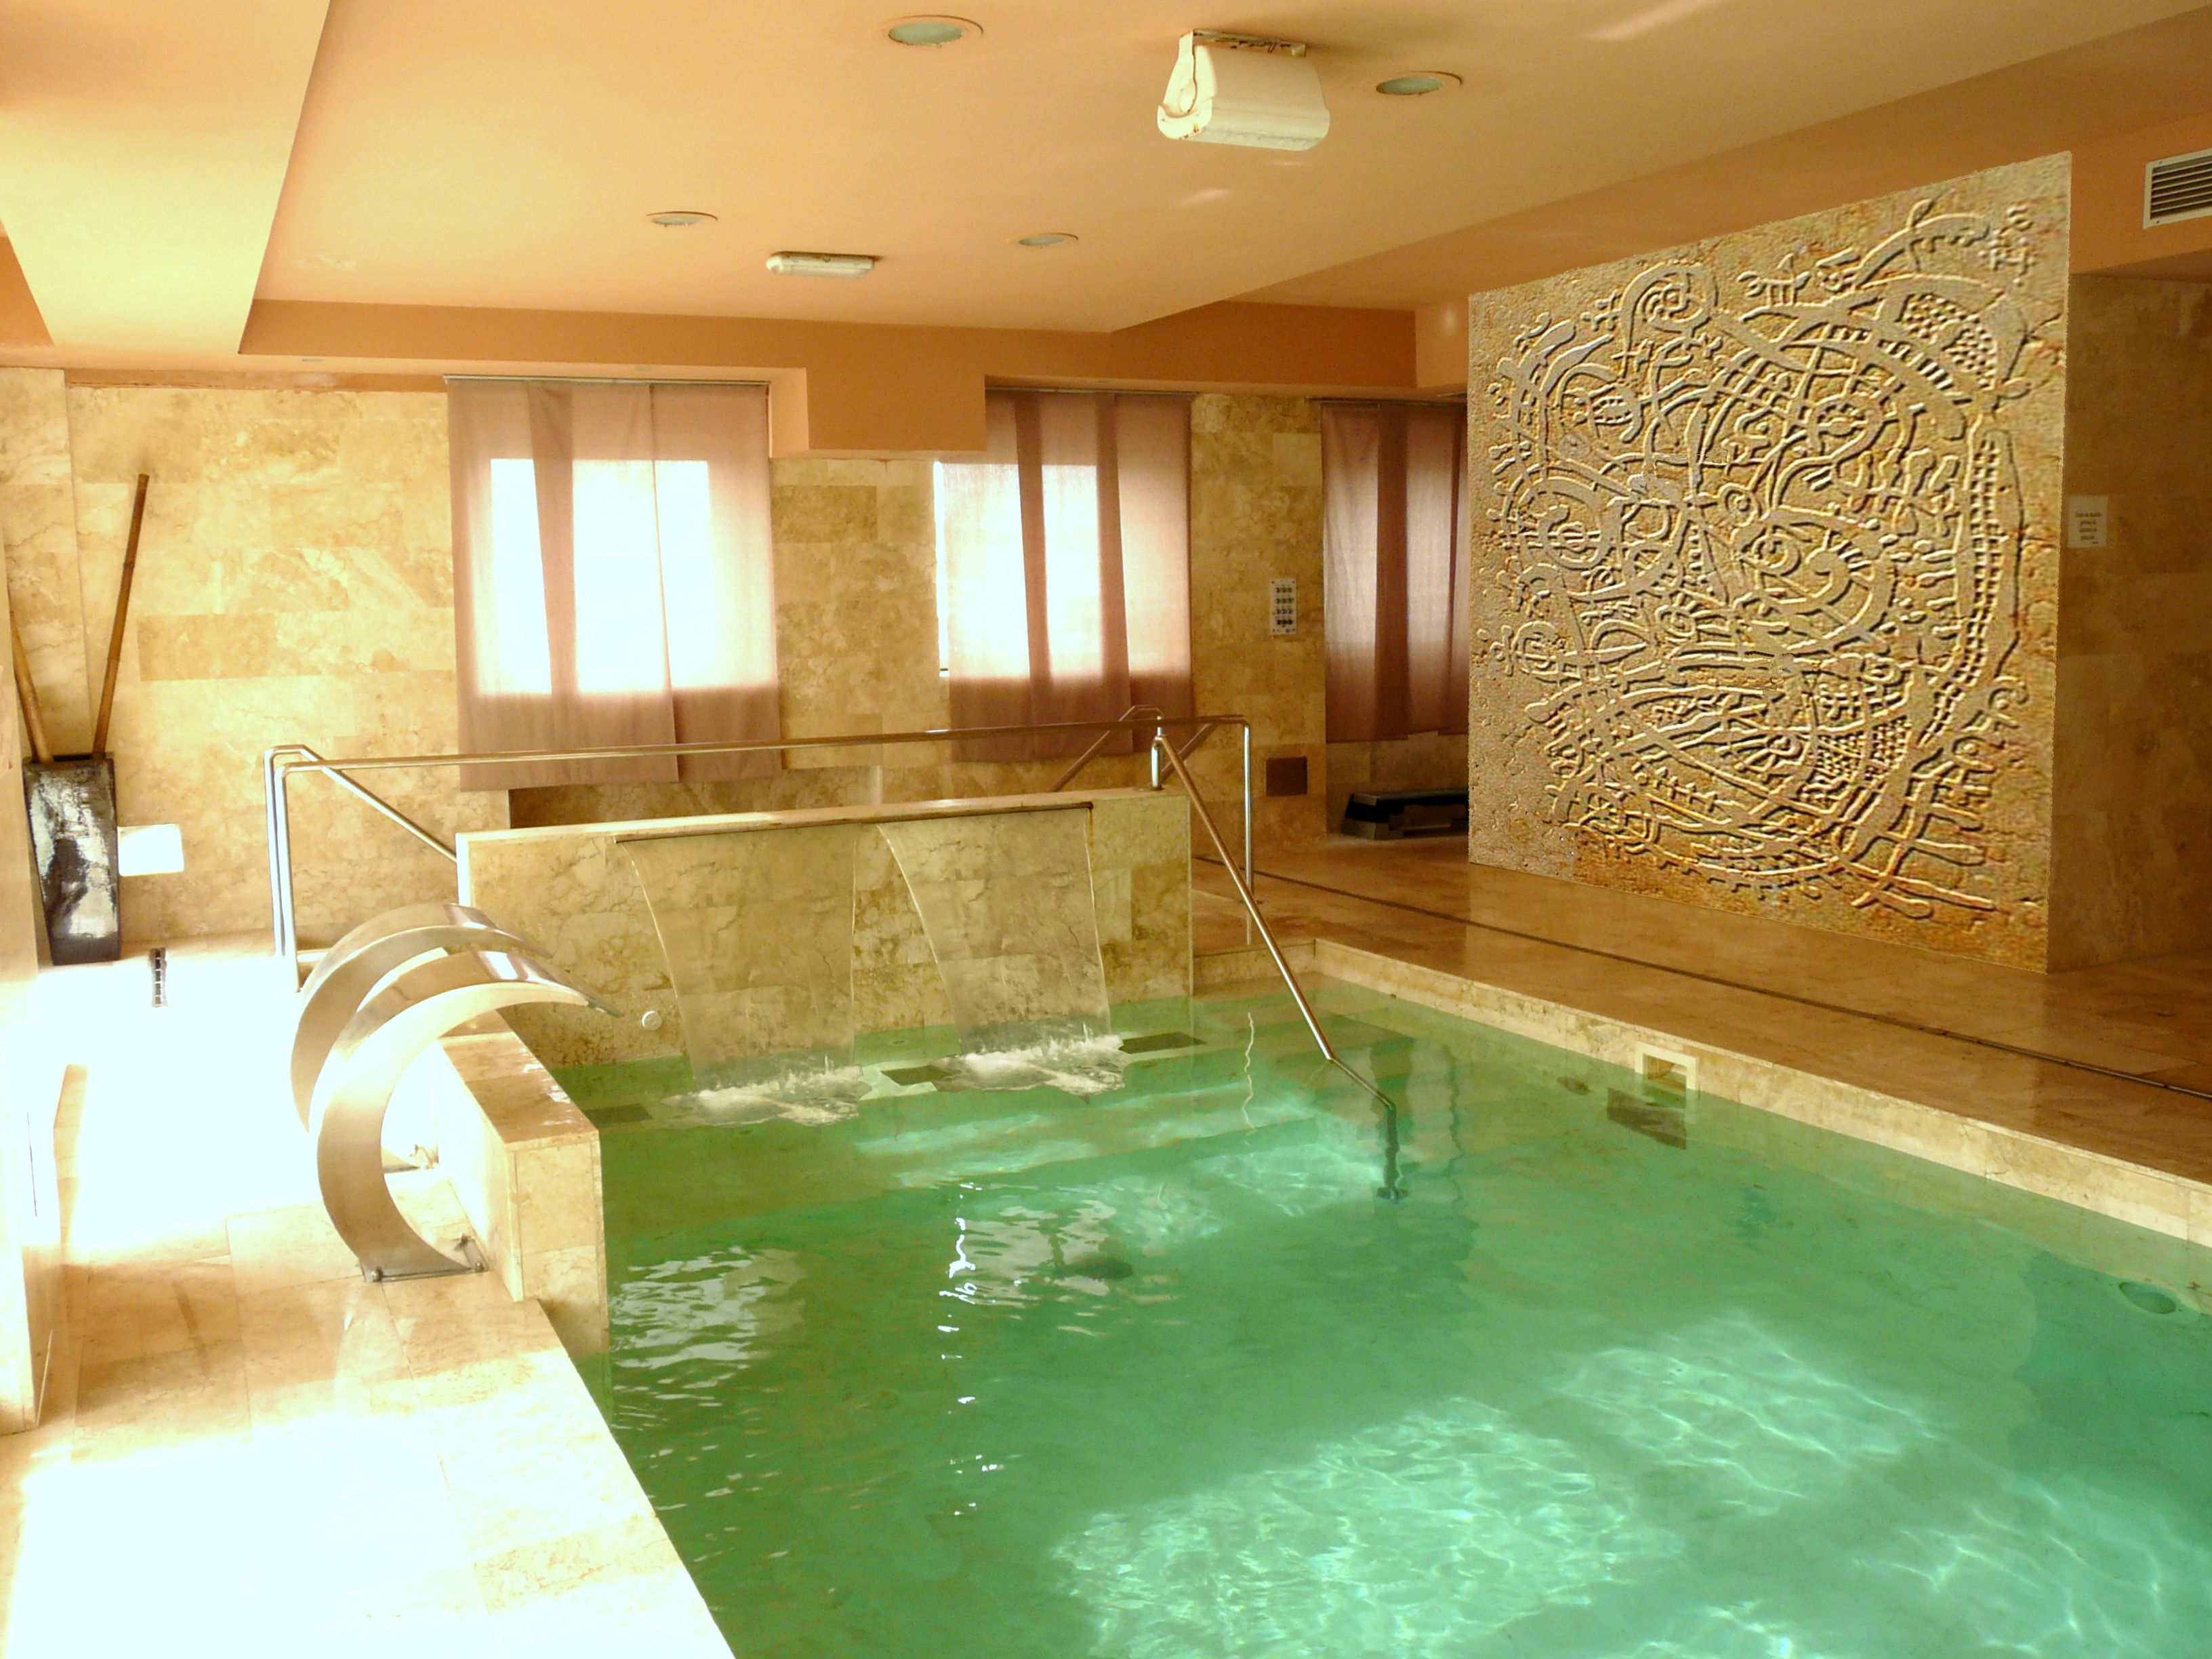 Water and art stone for luxury SPA.